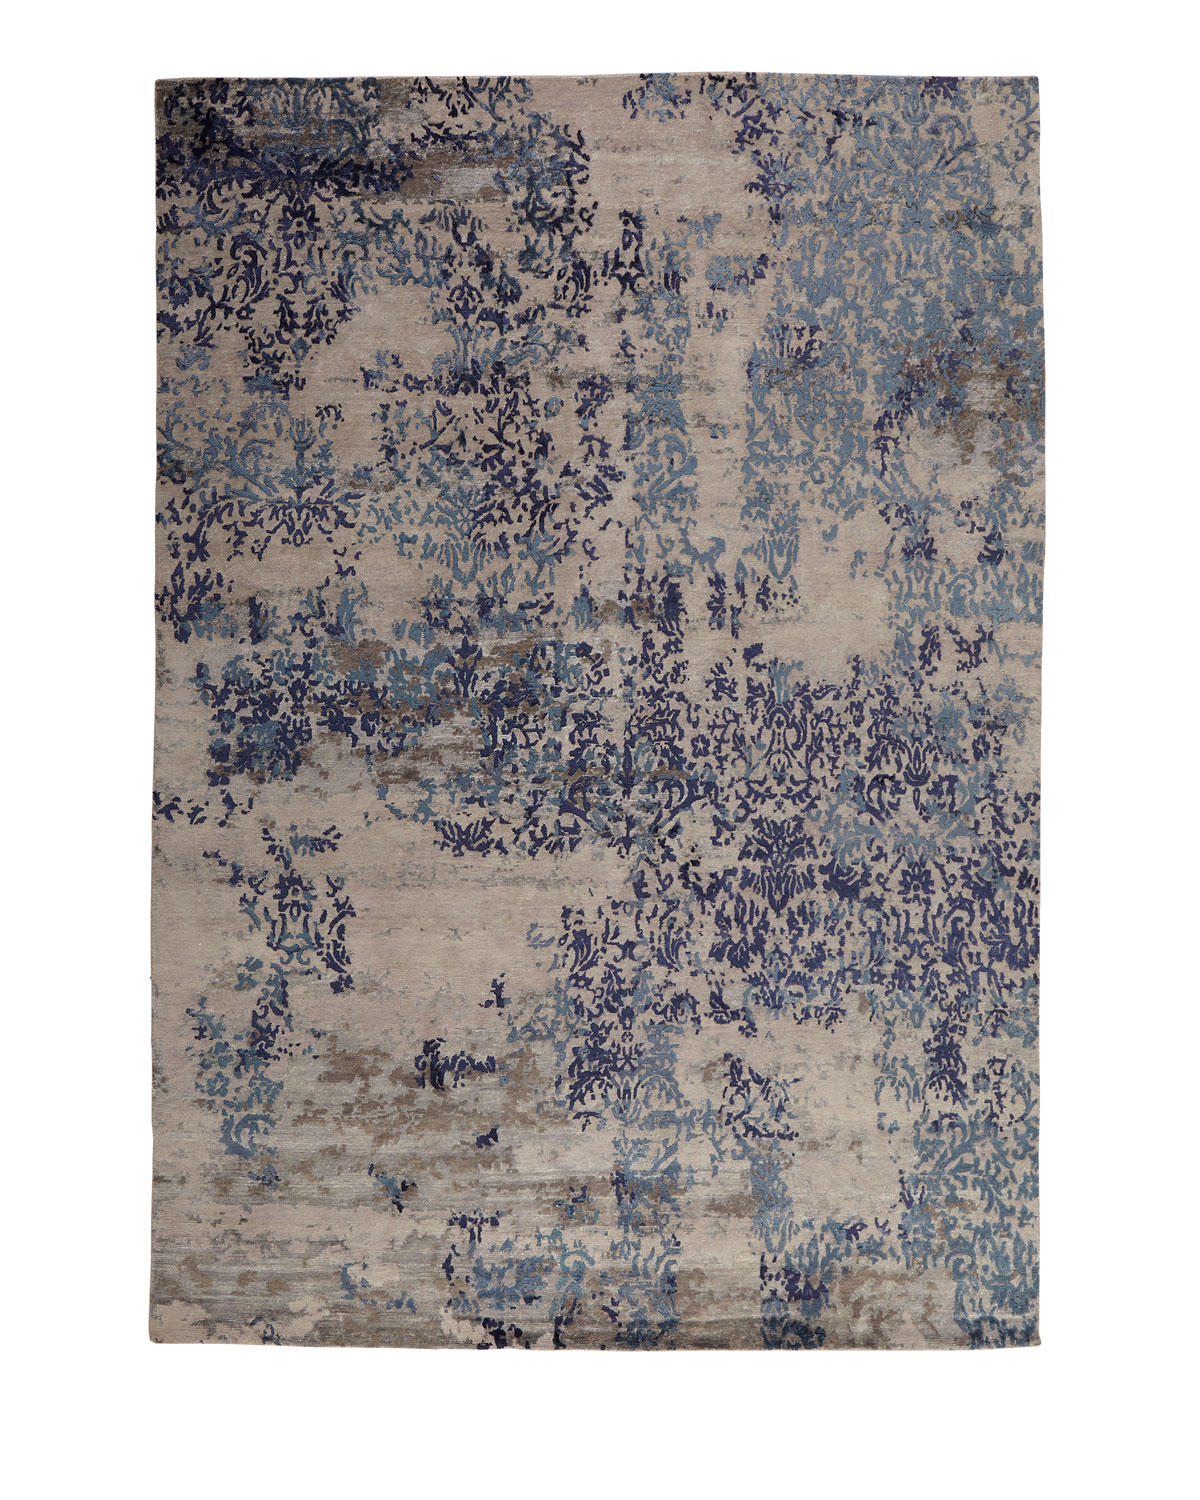 Majorelle Rug, 6' x 9' Product Image